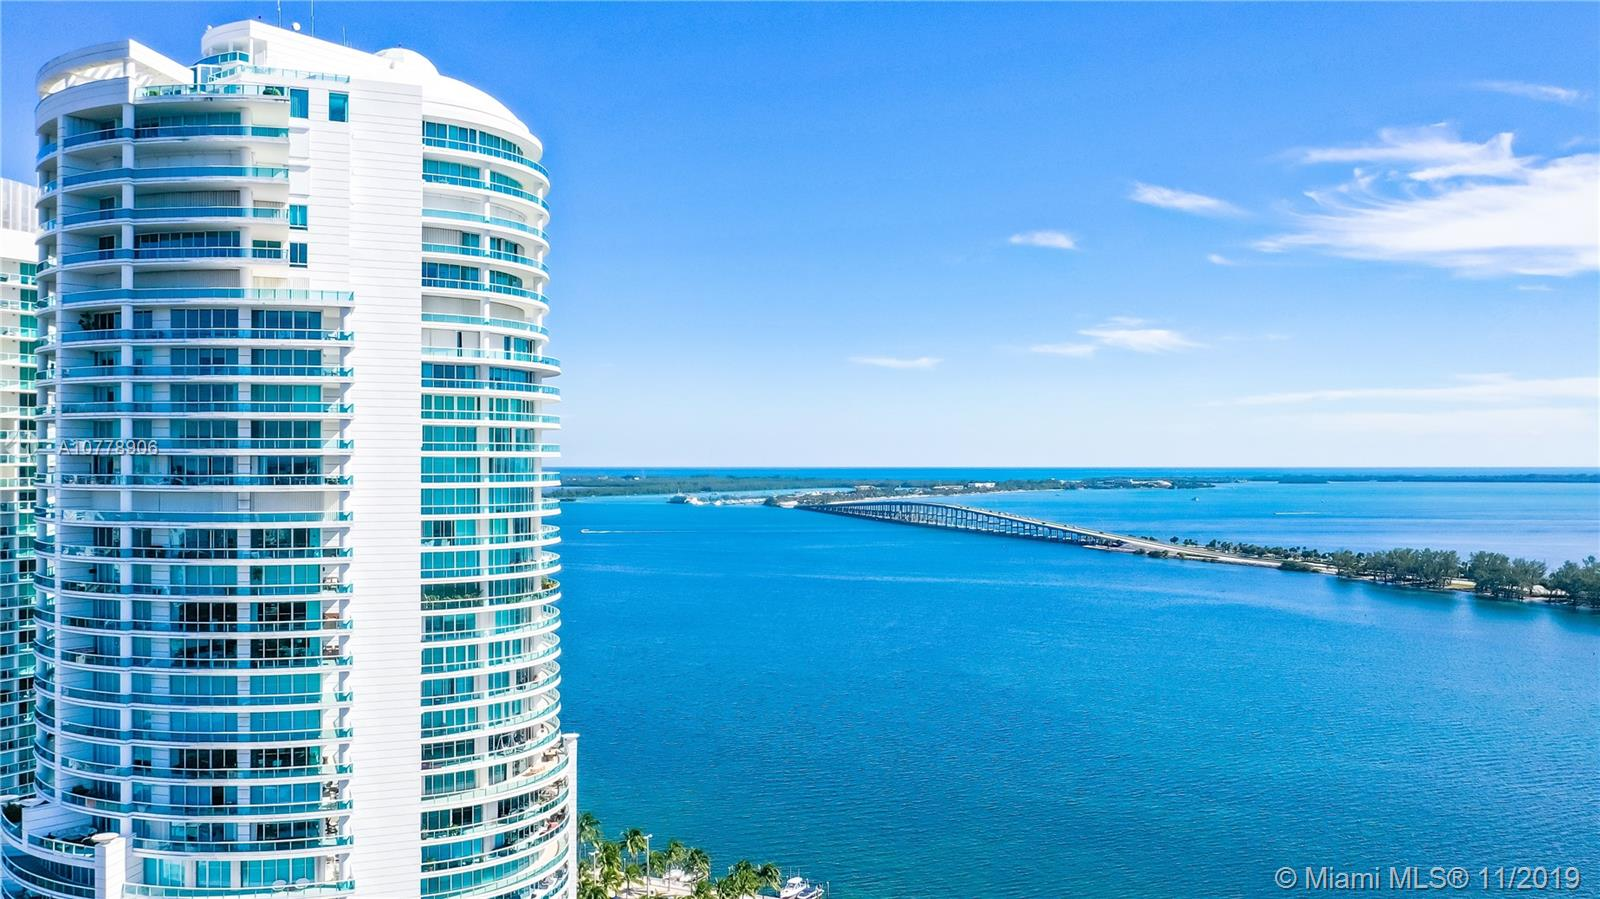 "FULLY REMODELED**Live at Bristol, one of the most exclusive buildings in Brickell. This two-story 3 BR/3.5BTHS residence with panoramic views of the Biscayne Bay from every room has been impeccably remodeled featuring: large terrace perfect for entertaining, modern kitchen with Sub Zero appliances and stone countertop, living and dining area with large porcelain tile floors, Master with private terrace with wood-like tile flooring and ""His and Hers"" walk-in closets,  two separate master bathrooms, upstairs and downstairs bedrooms both with access to terrace and private bathrooms, and a den/office. This residence feels like a house but with the perks of the amenities of a luxury building: pool, gym, tennis court, valet parking, lobby,24/7 security & convenience store. VERY MOTIVATED SELLER!"